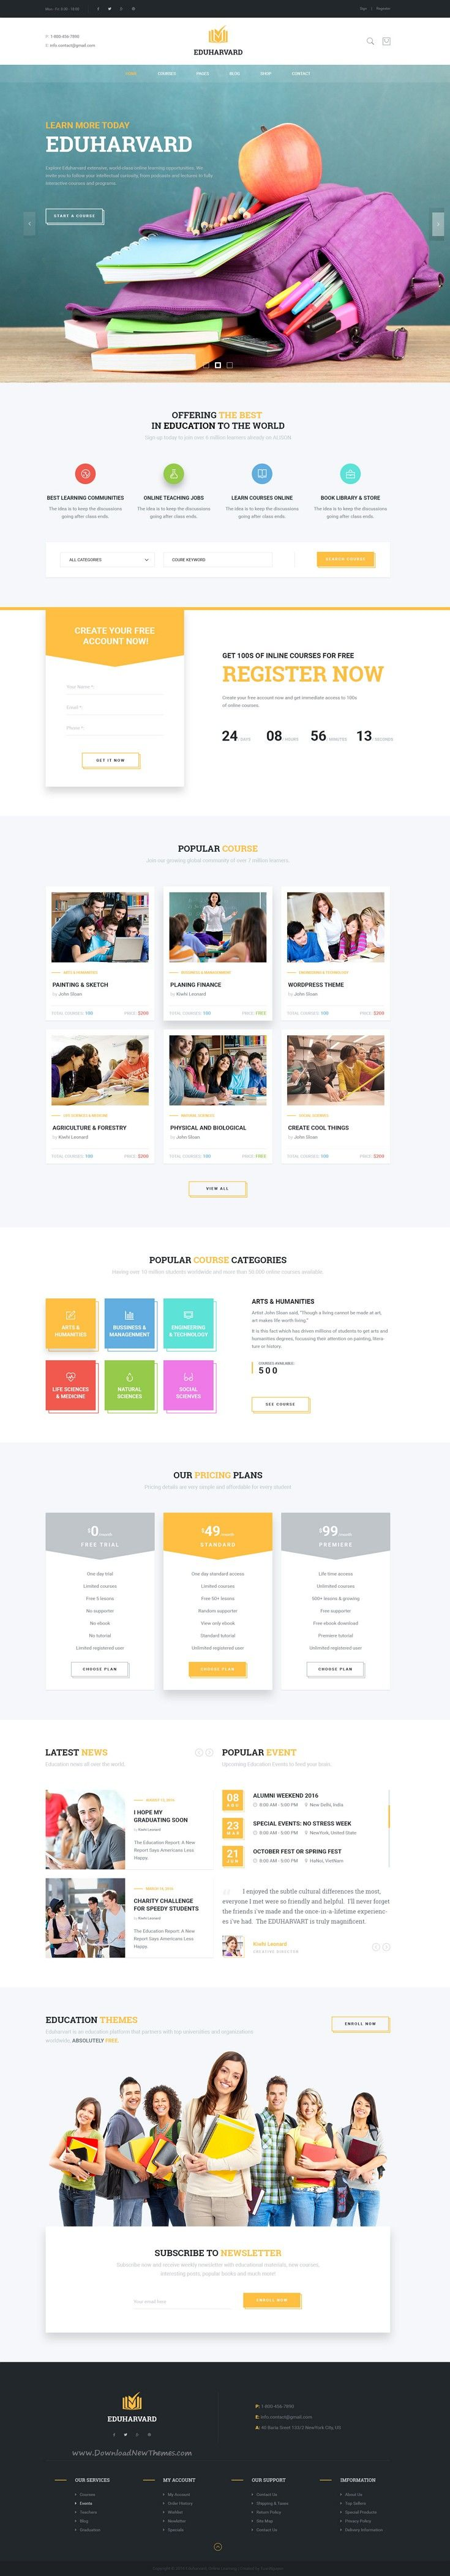 Eduharvard is a Modern, Creative, Responsive & Multipurpose PSD Template Design suitable for Educational #Institutions like Universities and #Colleges, Online Courses / Online Learning and Events. #webdesign